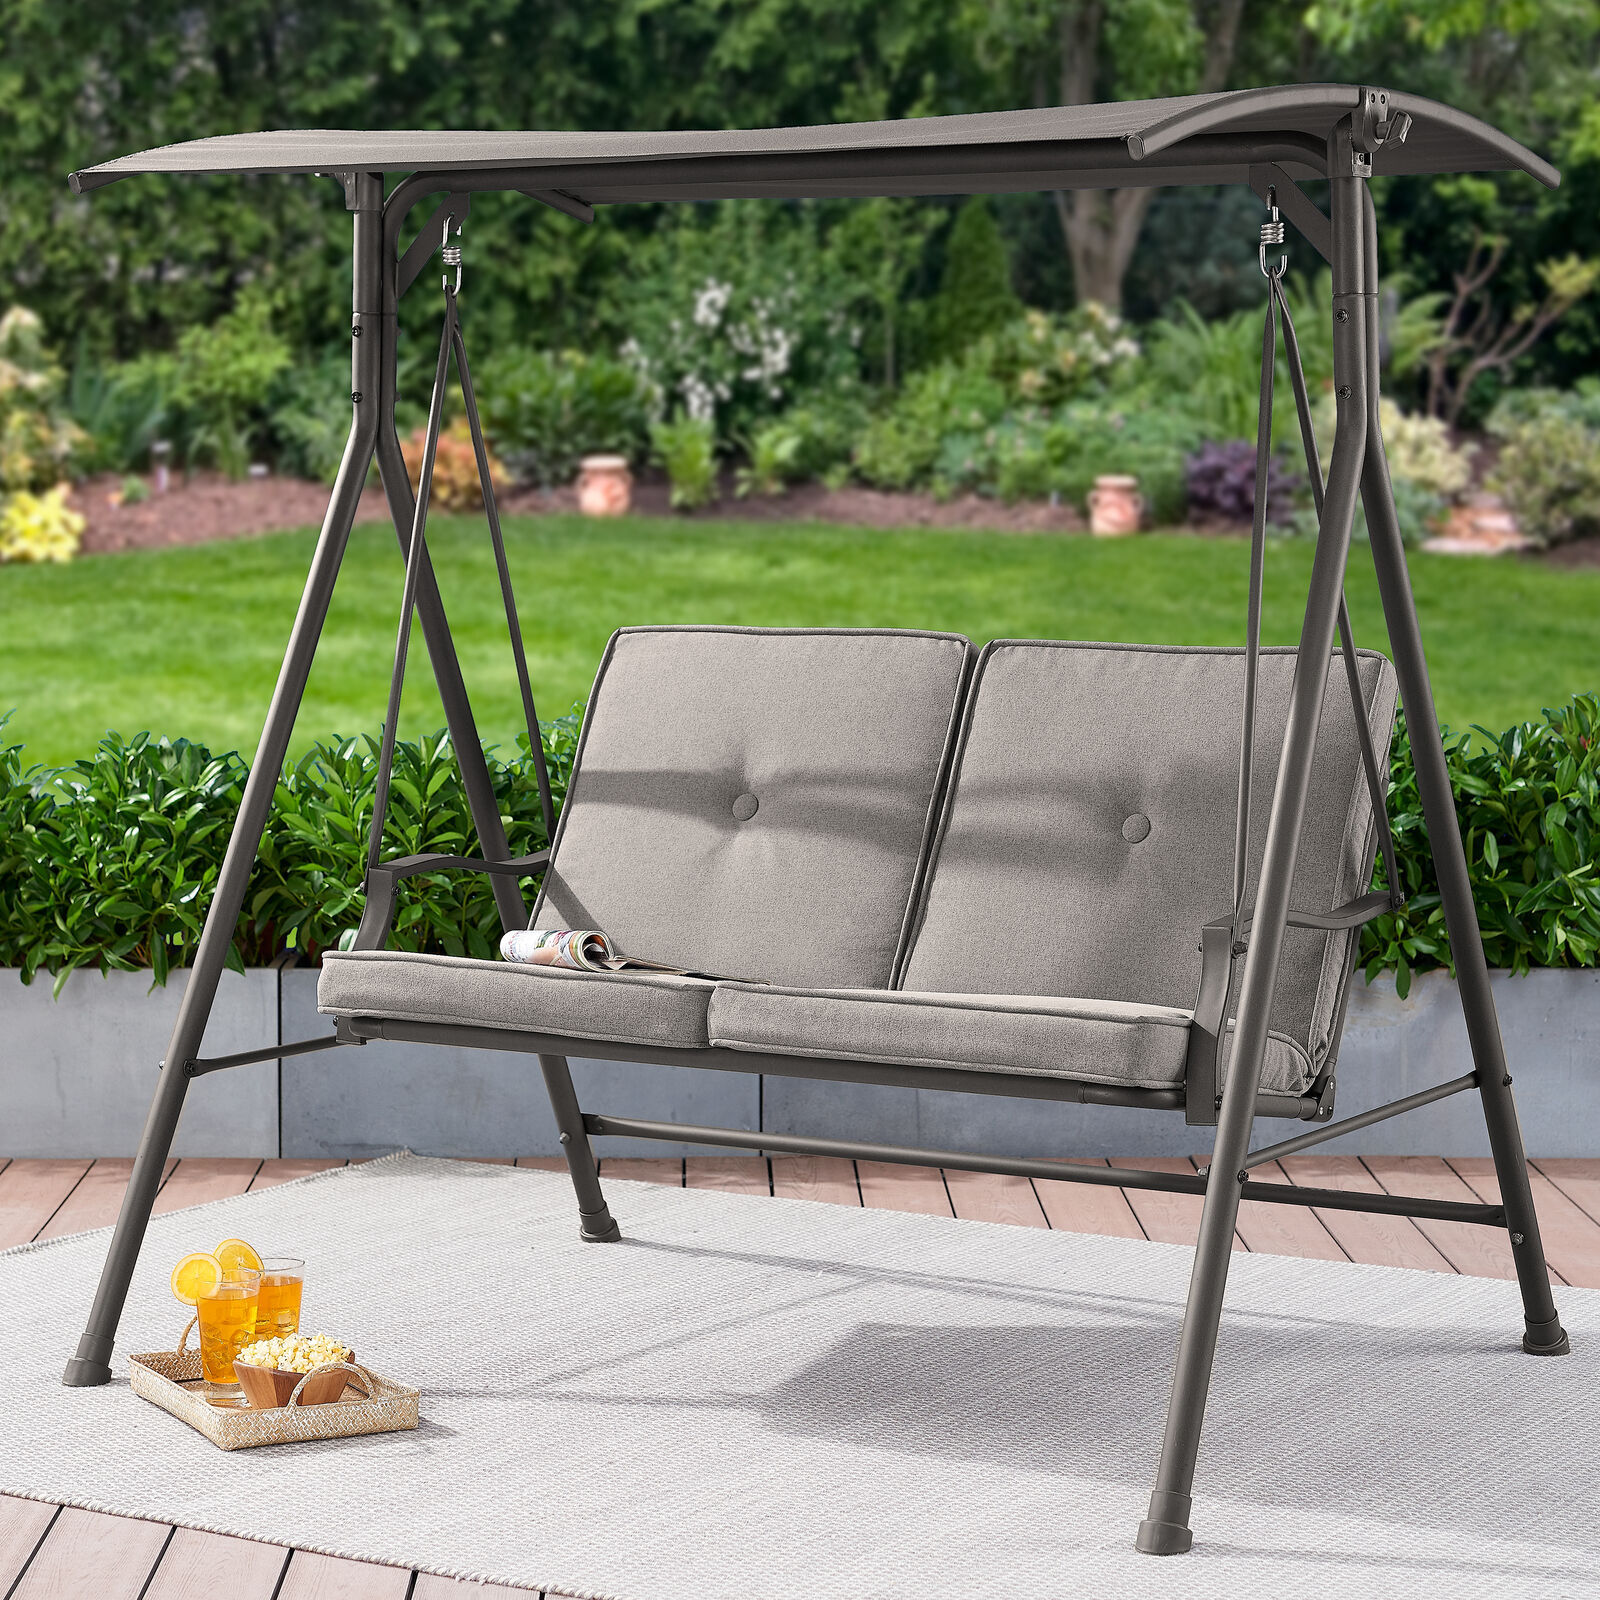 Mainstays Holten Ridge Two-Seat Canopy Patio Swing with Gray Cushions